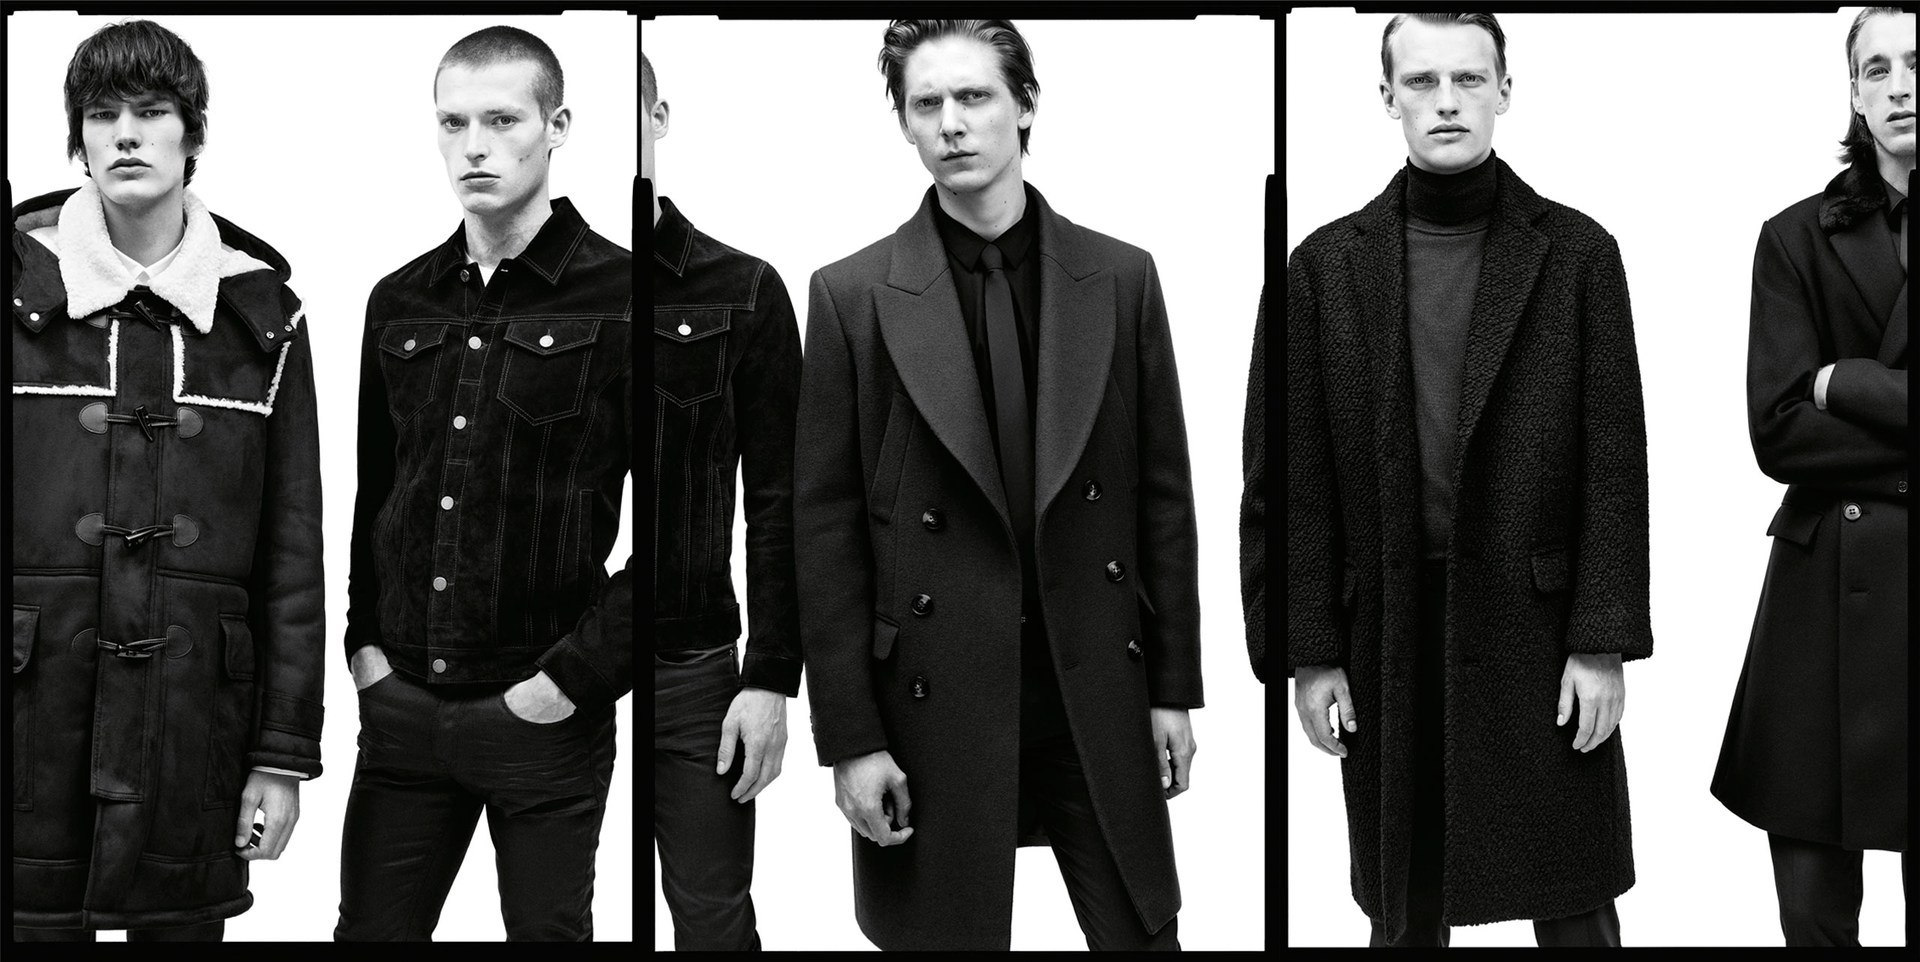 ZARA is coming back with great ads on Autumn/Winter 2016 Campaign shooting by master Willy Vanderperre some of the models are Julius Gerhardt and Victor Nylander.